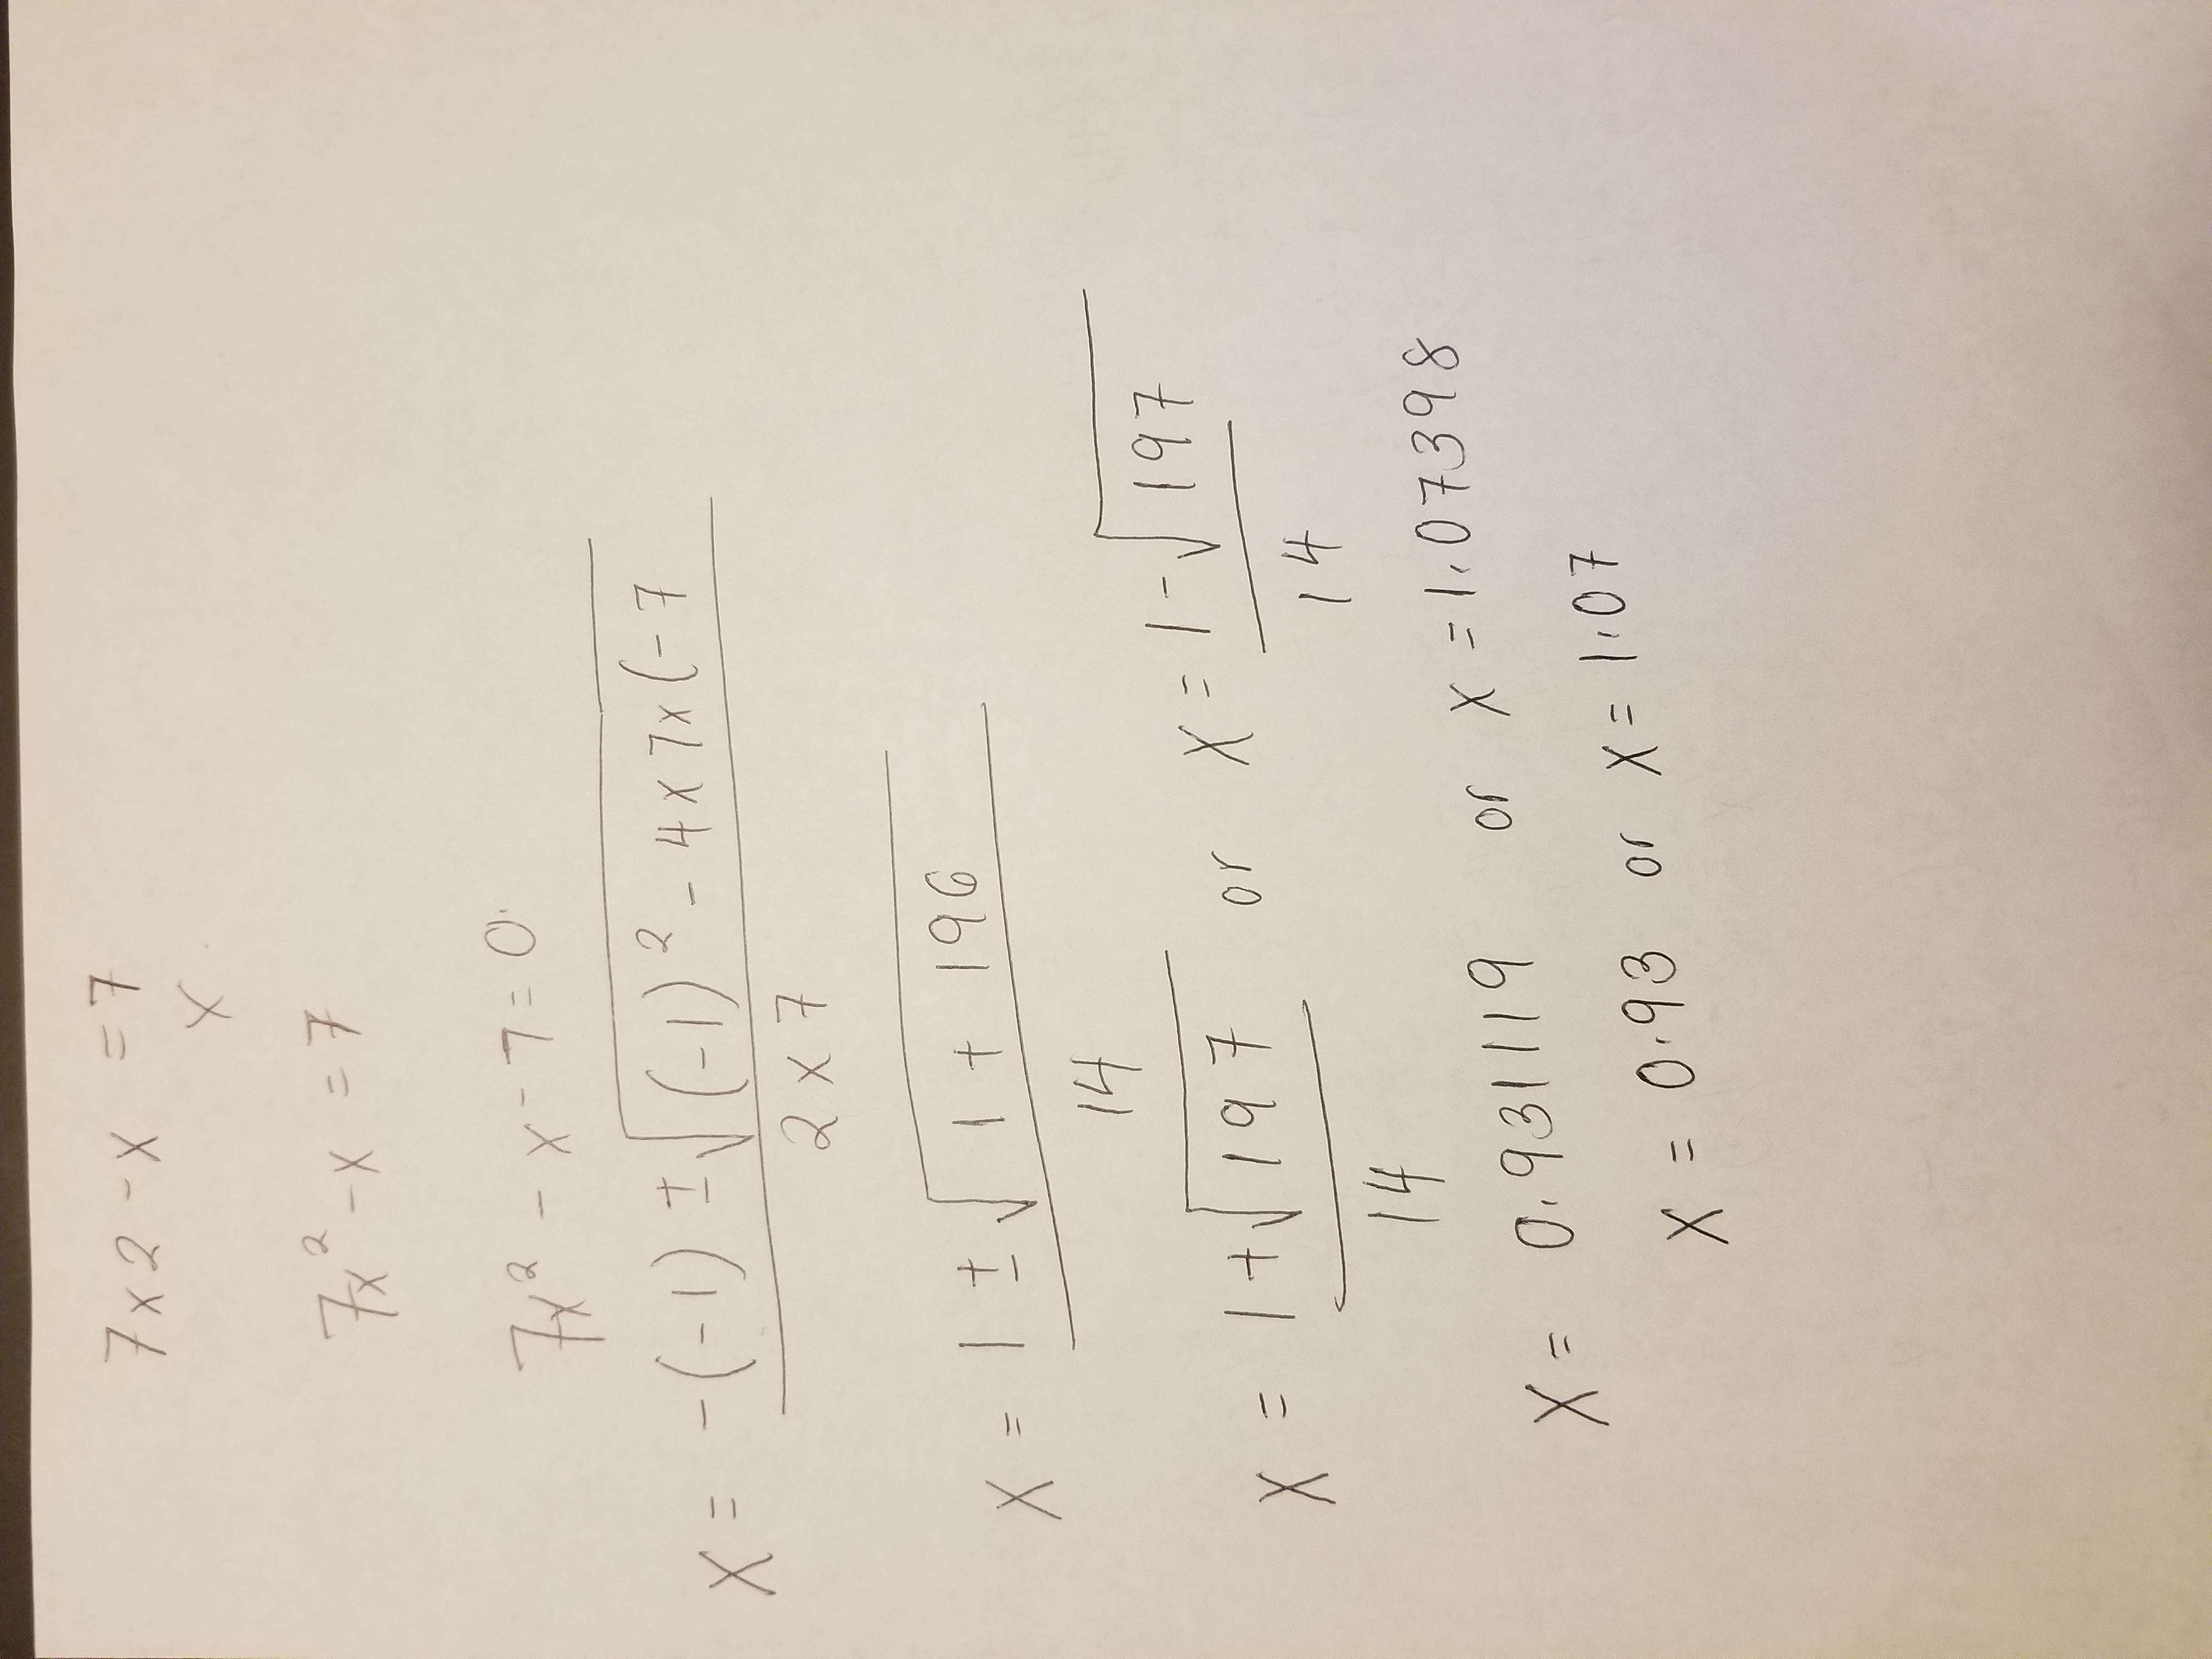 Using The Quadratic Formula To Solve 7x2 – X = 7, What Are